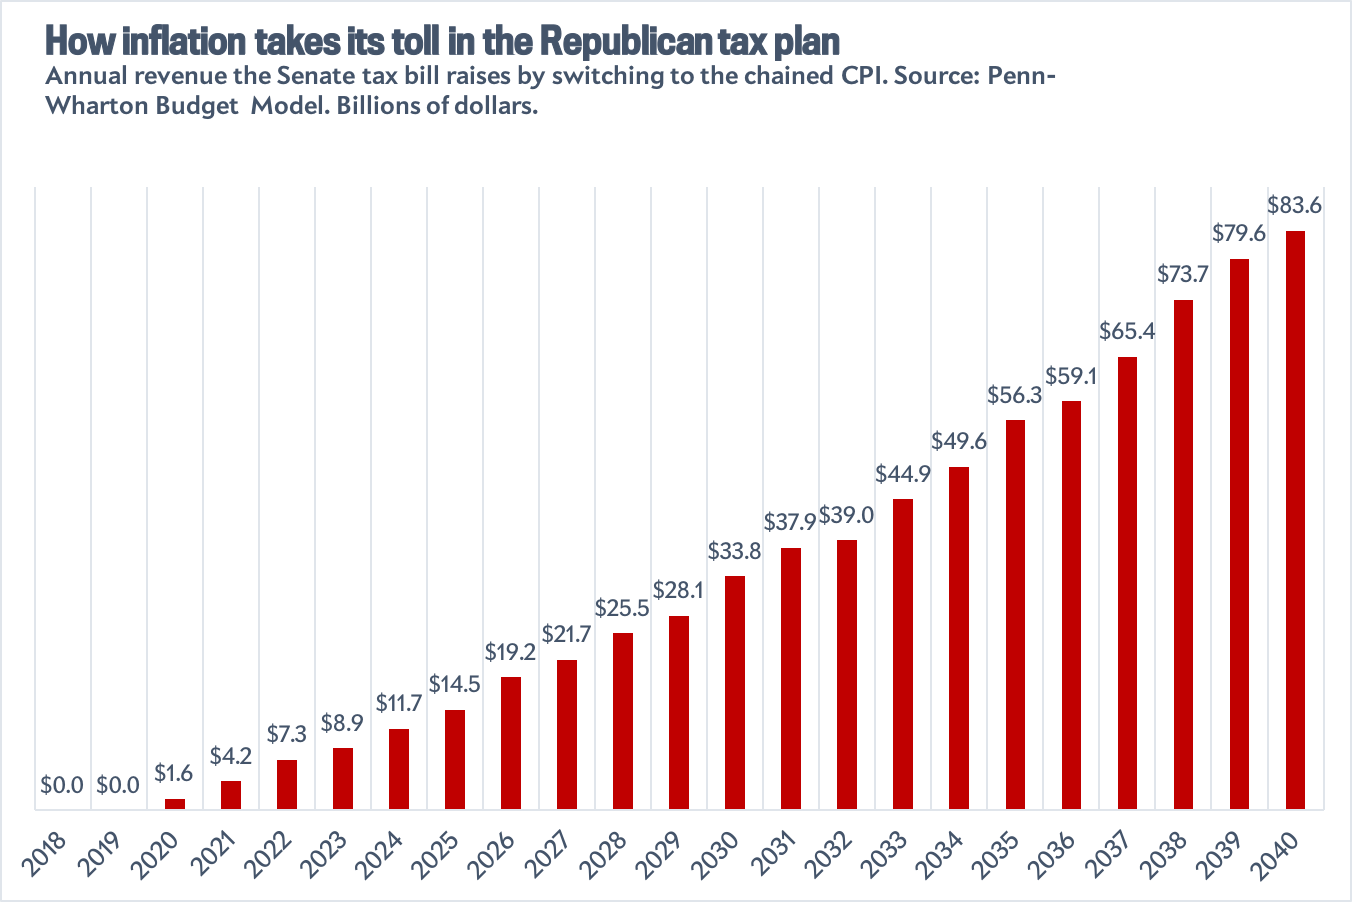 Annual revenue raised by switching to chained CPI under the Senate tax plan